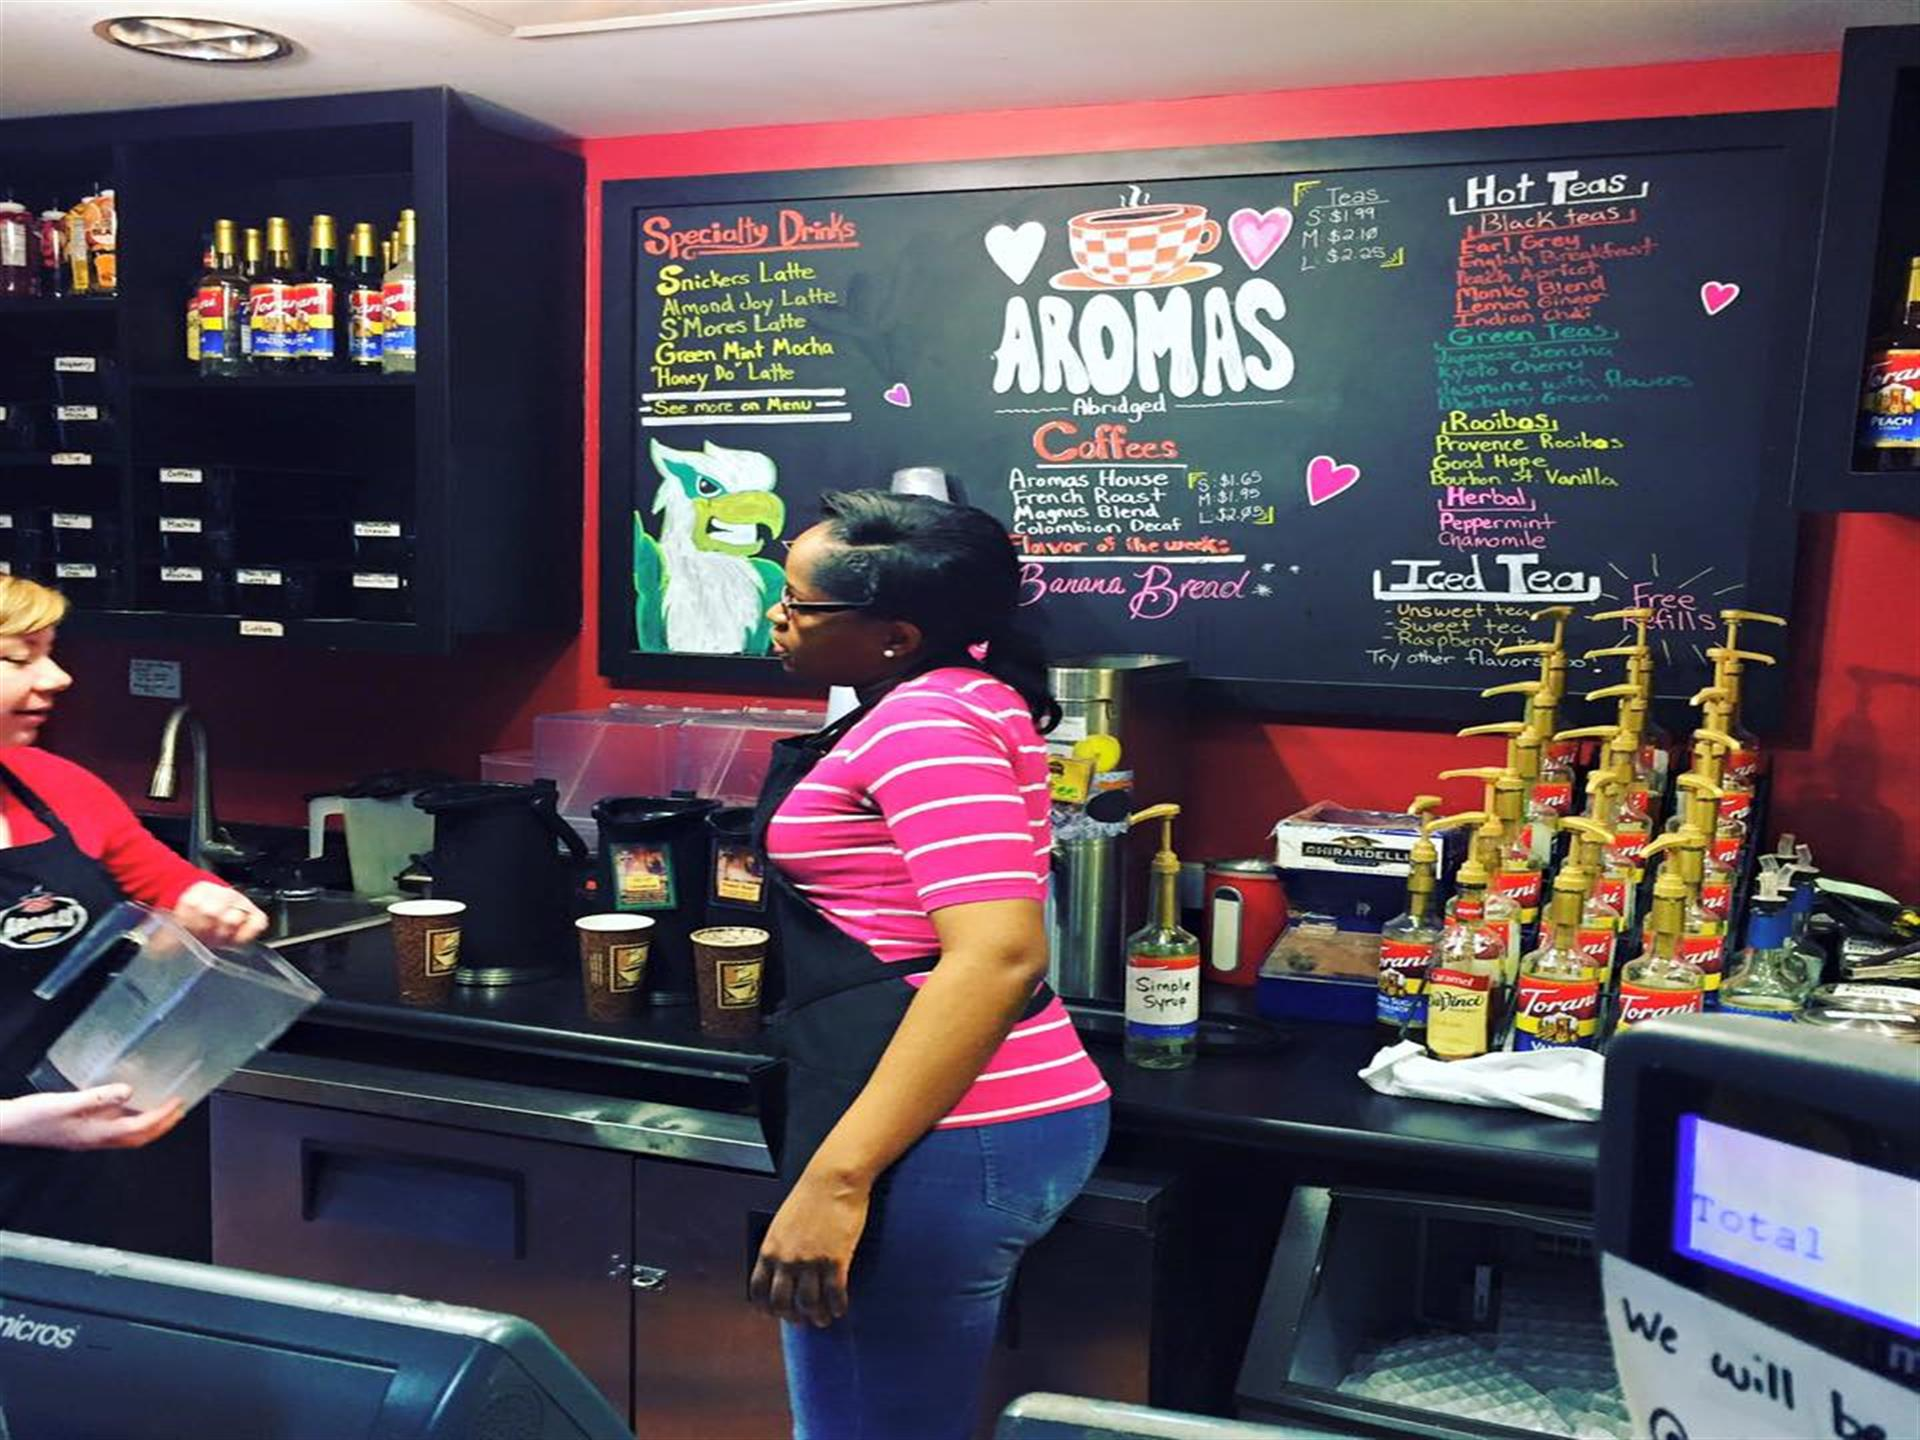 workers behind counter with menu on black chalkboard in background